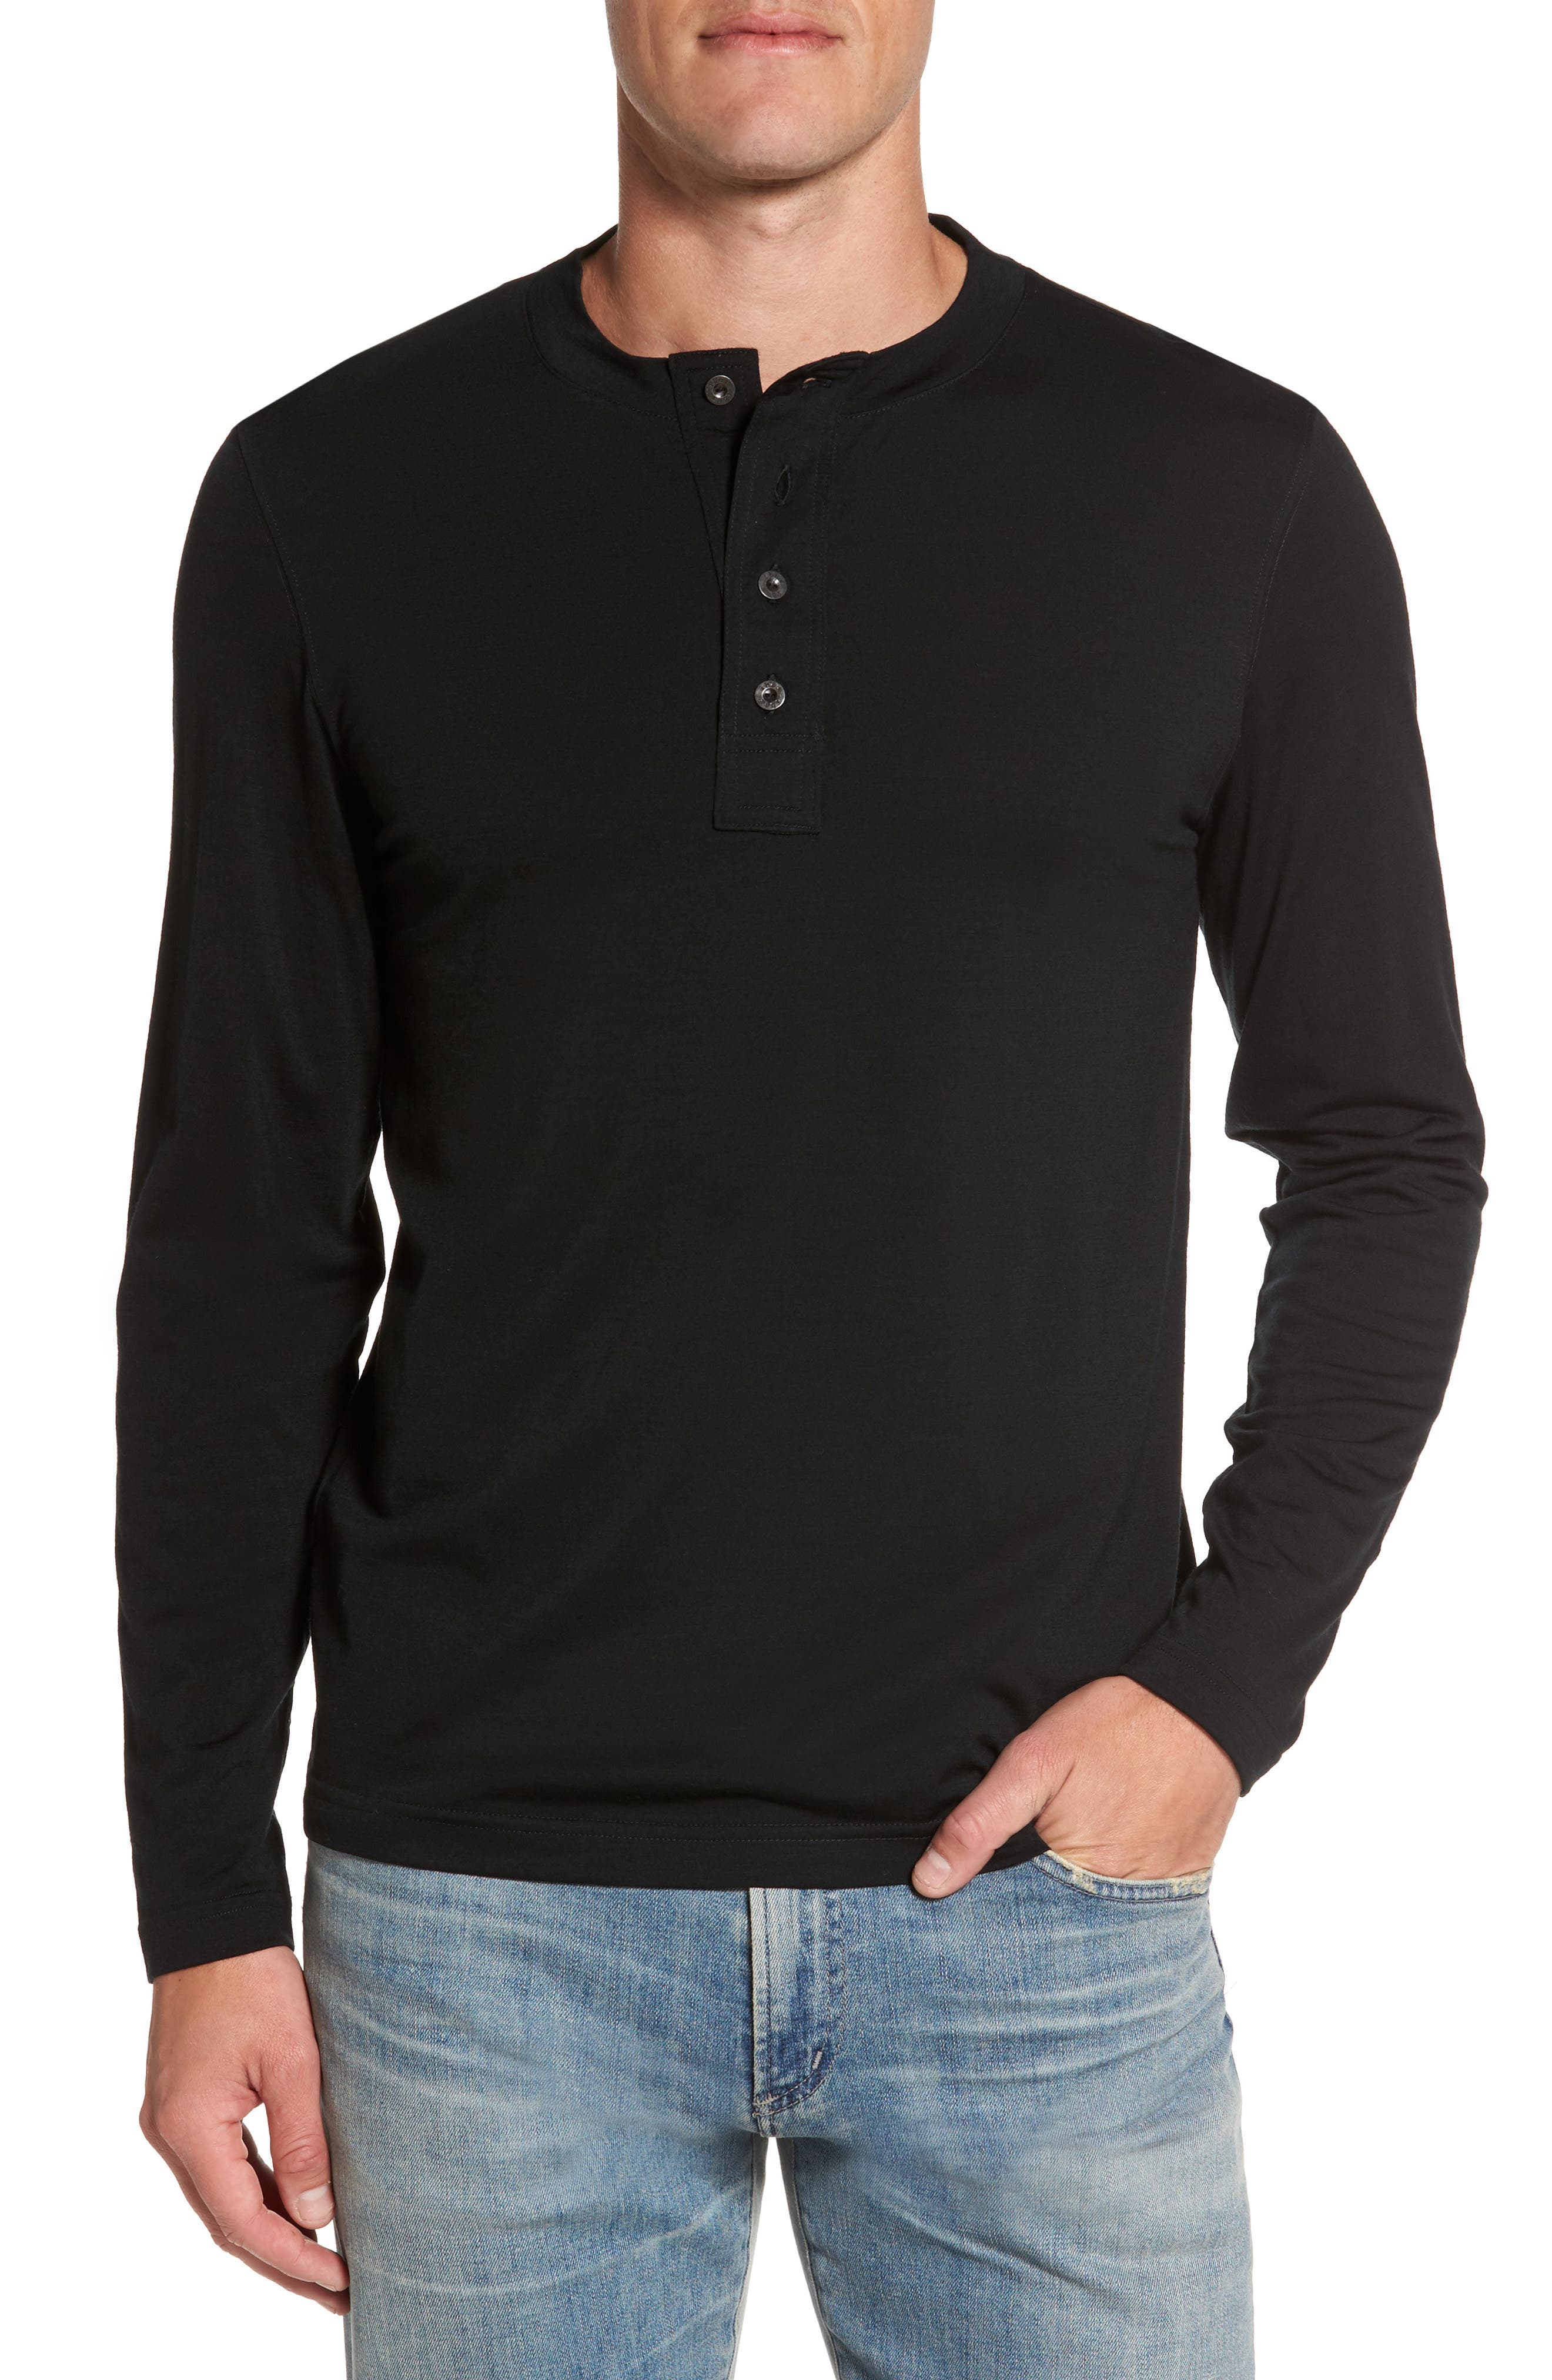 Odyssey Merino Wool Blend Henley,                             Main thumbnail 1, color,                             001